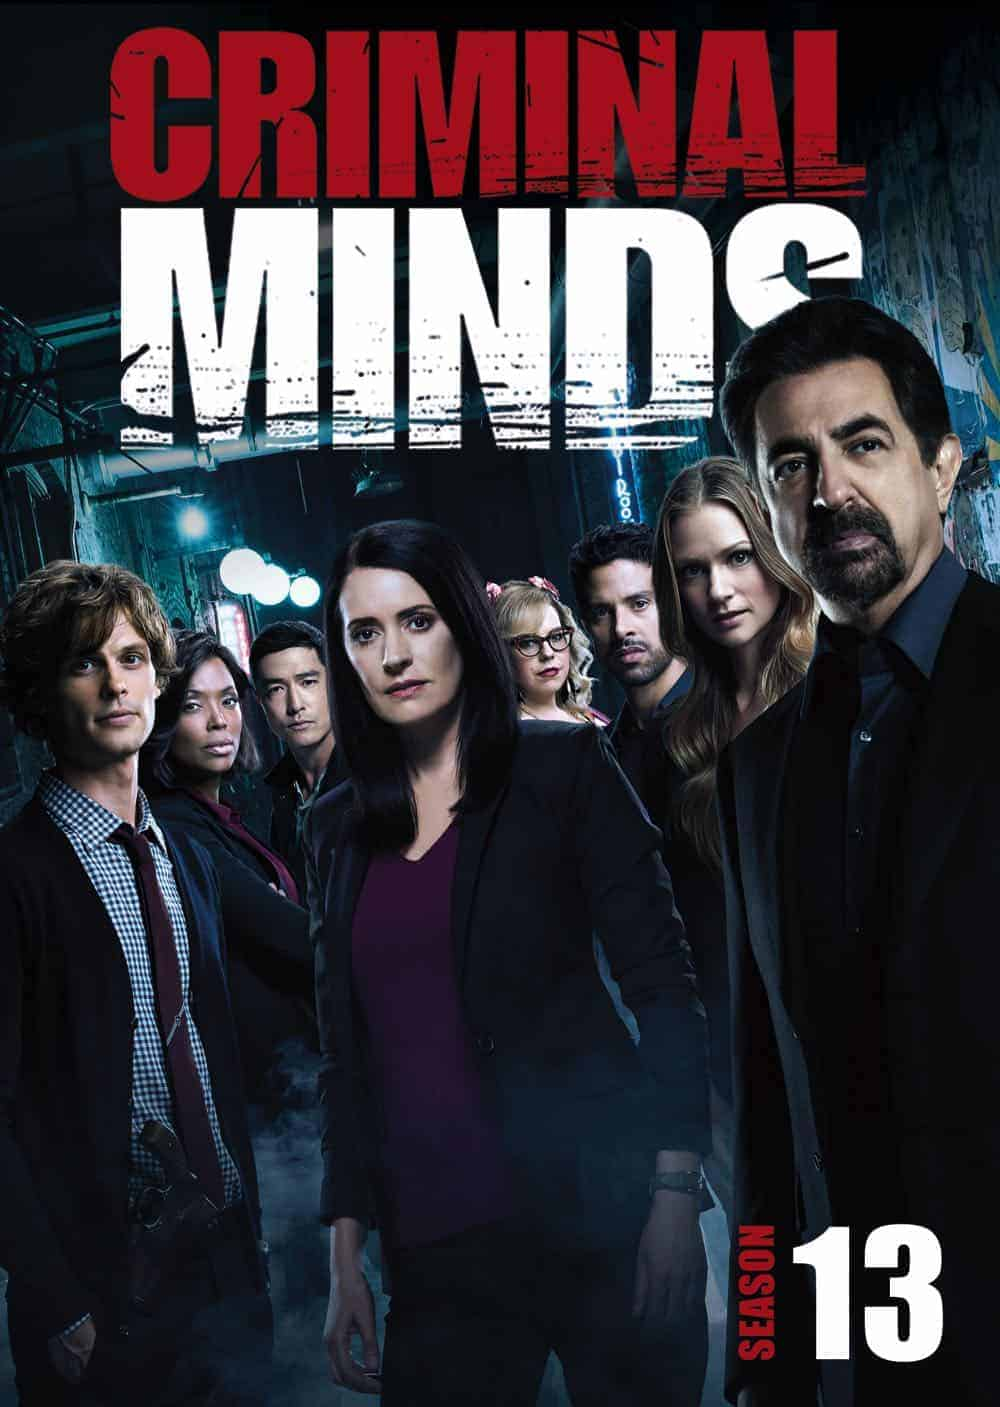 CRIMINAL MINDS Season 13 DVD